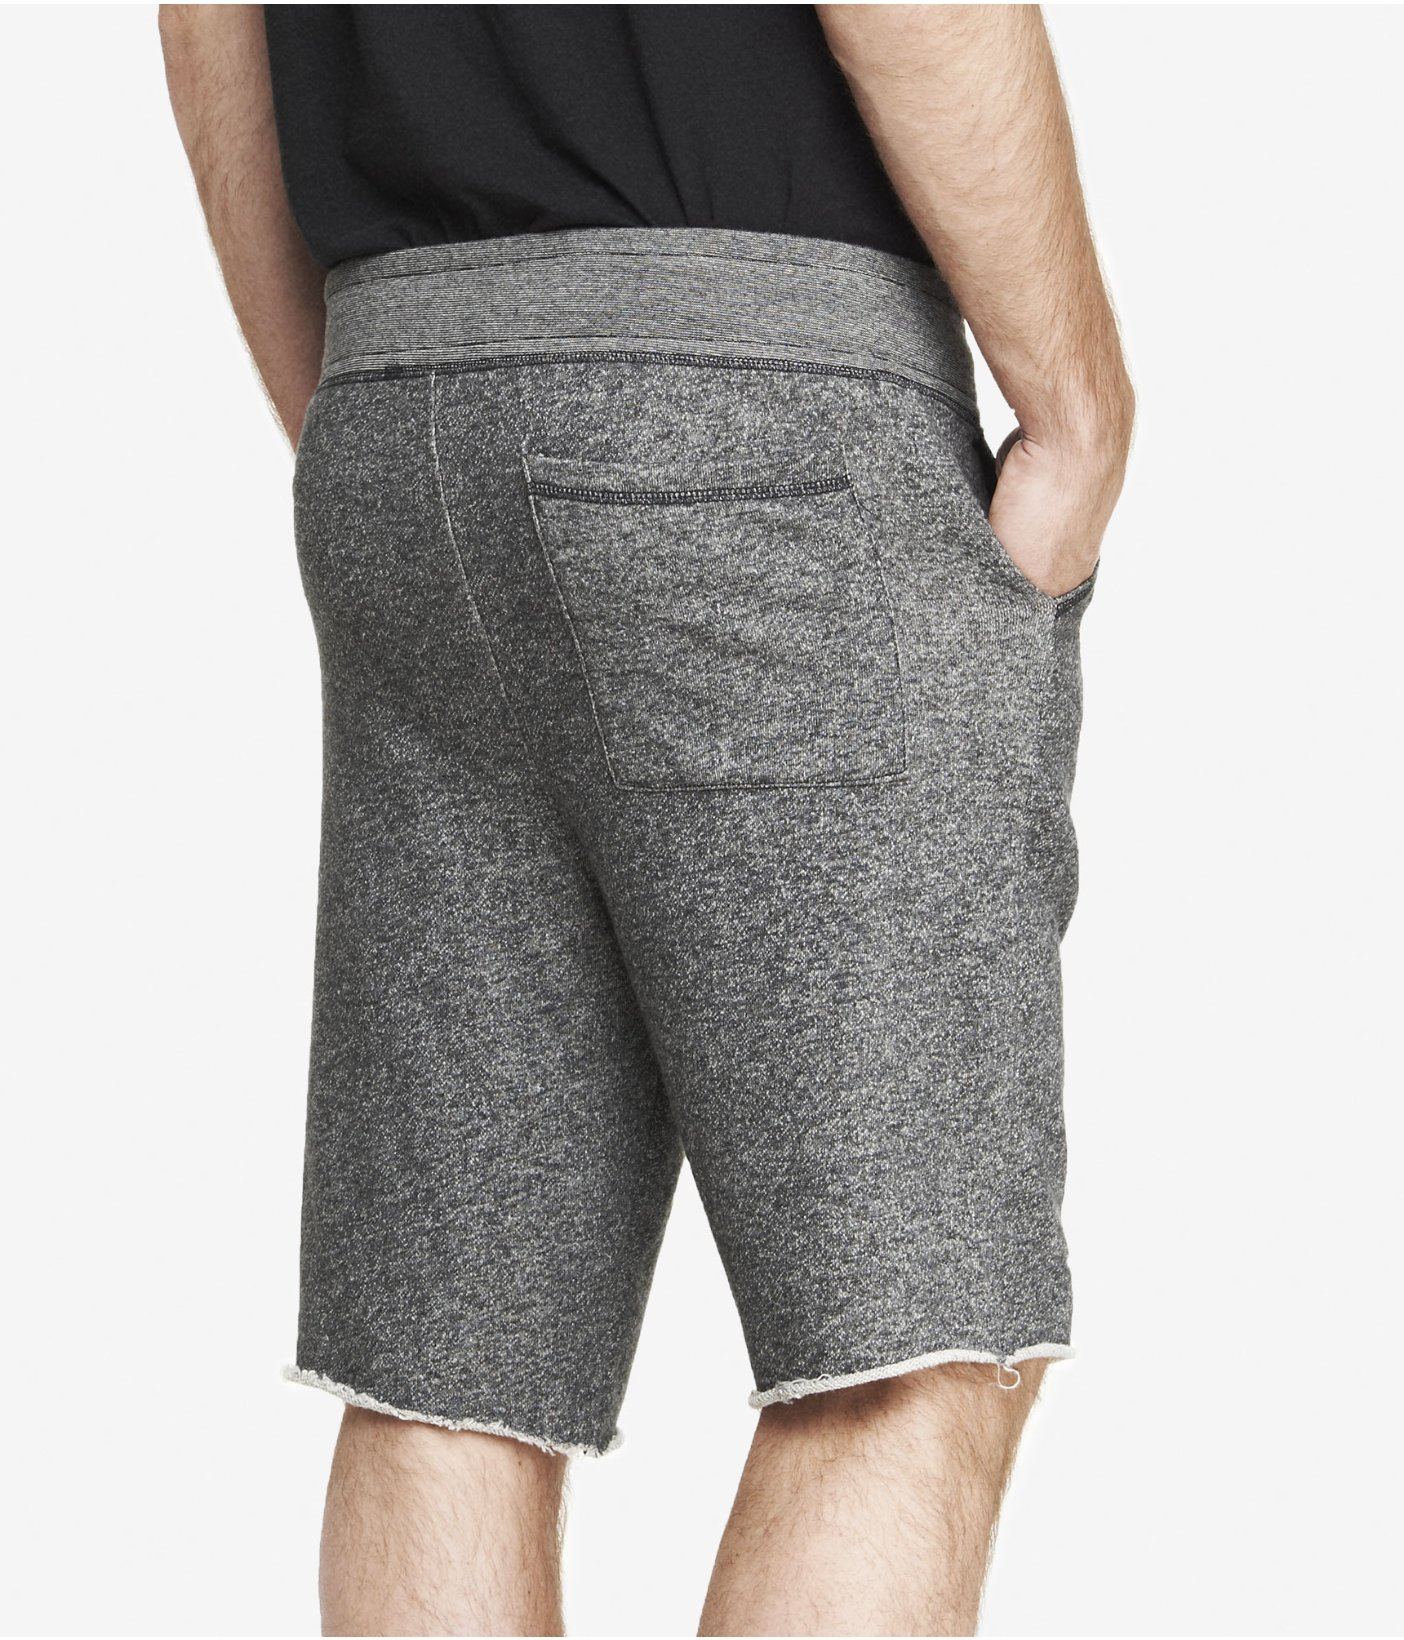 Shop Under Armour Men's Pants FREE SHIPPING available in.